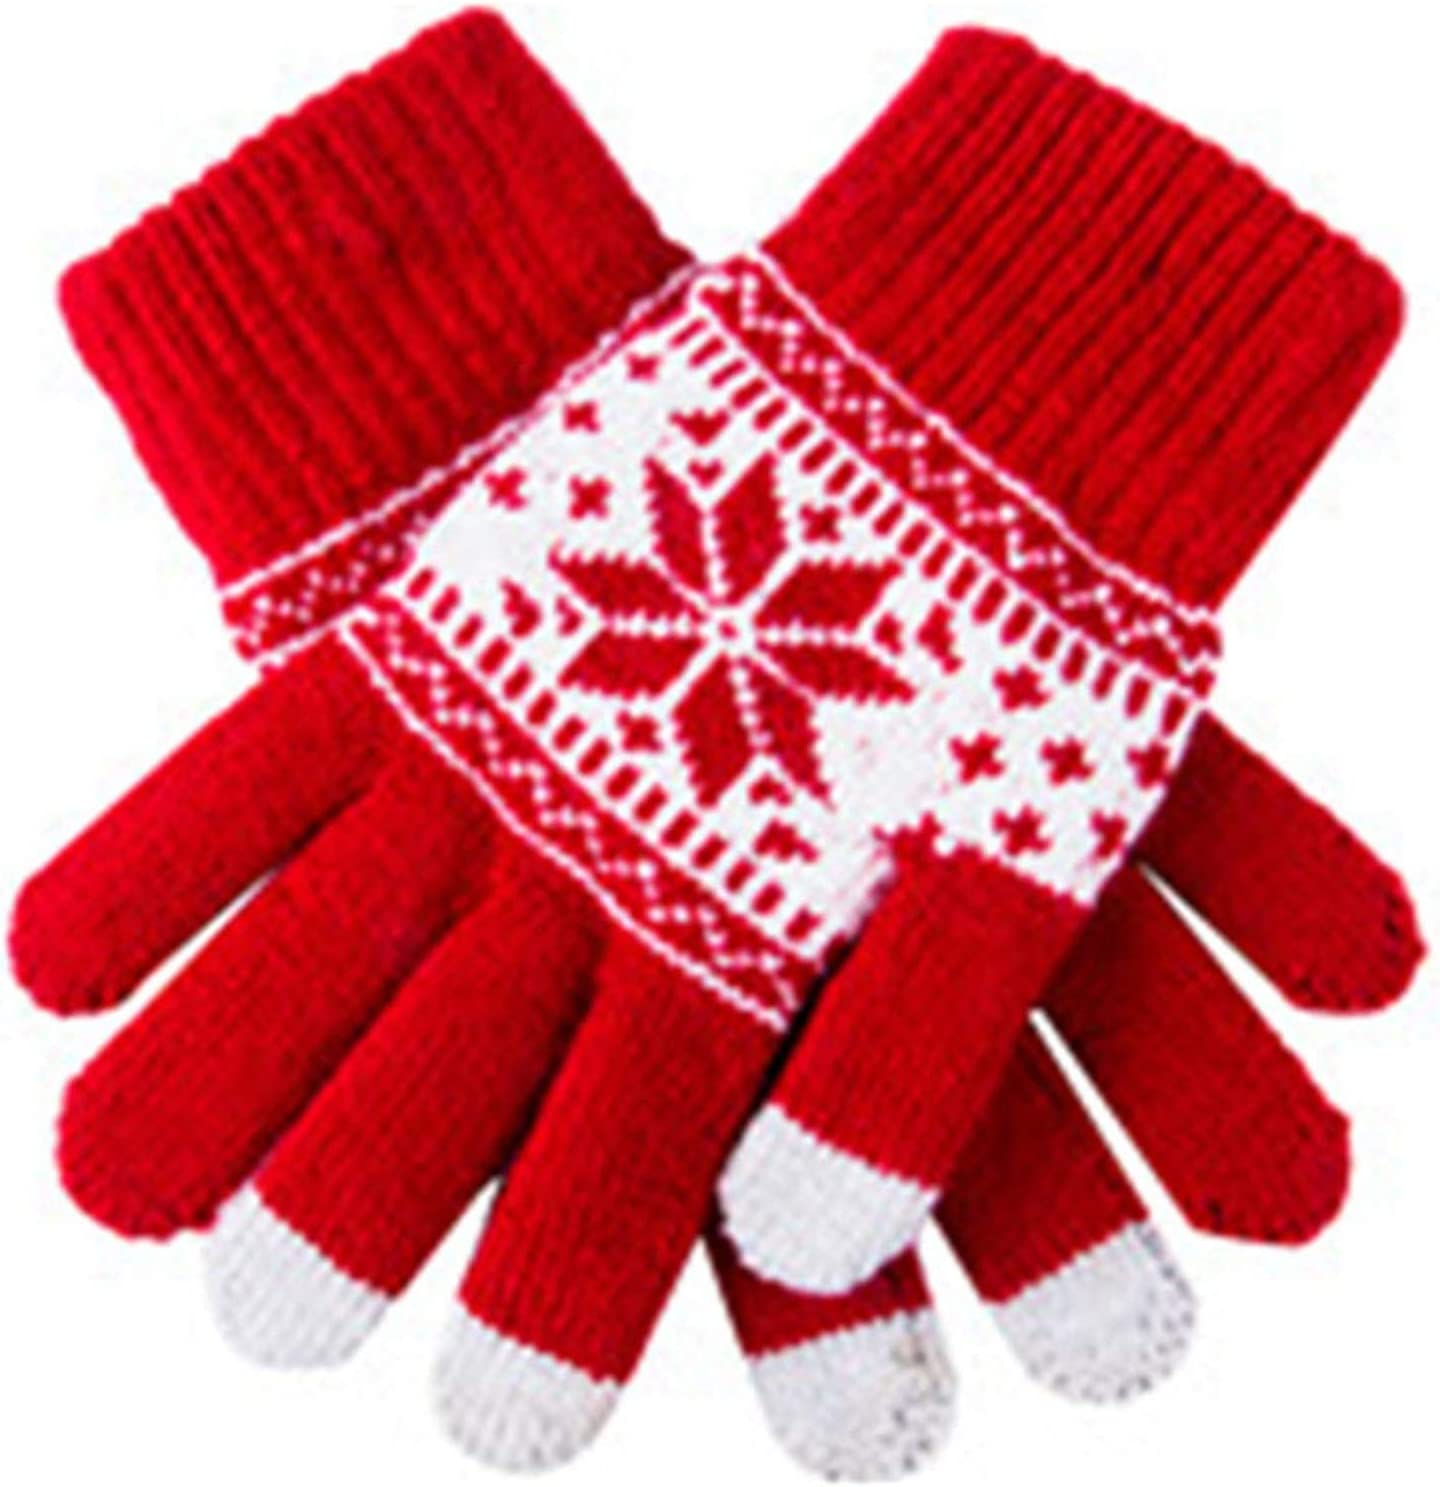 Lace Gloves Cute Christmas Warm Winter Gloves Snowflake Printed Knitted Touch Gloves Men Women Gloves Touch Screen Glove Party Supplies (Color : White, Gloves Size : One Size)